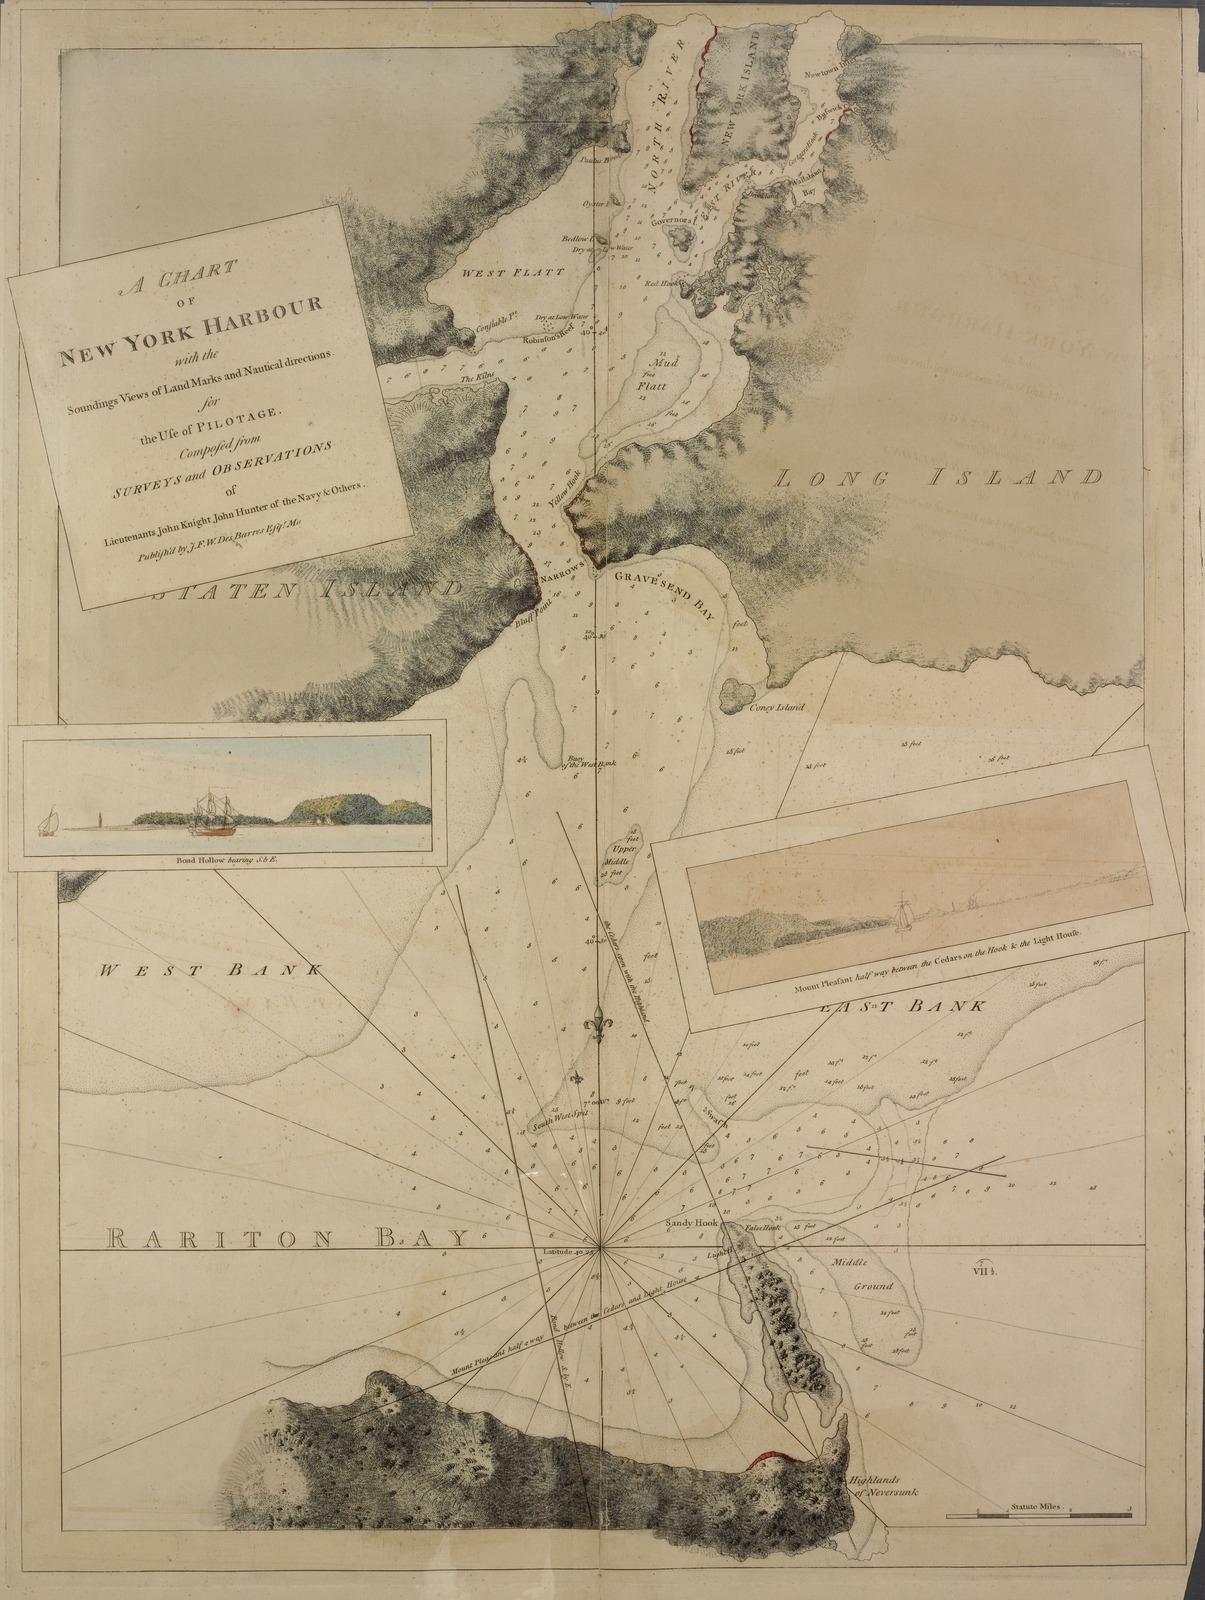 Map Of New York Harbour.A Chart Of New York Harbour With The Soundings Views Of Land